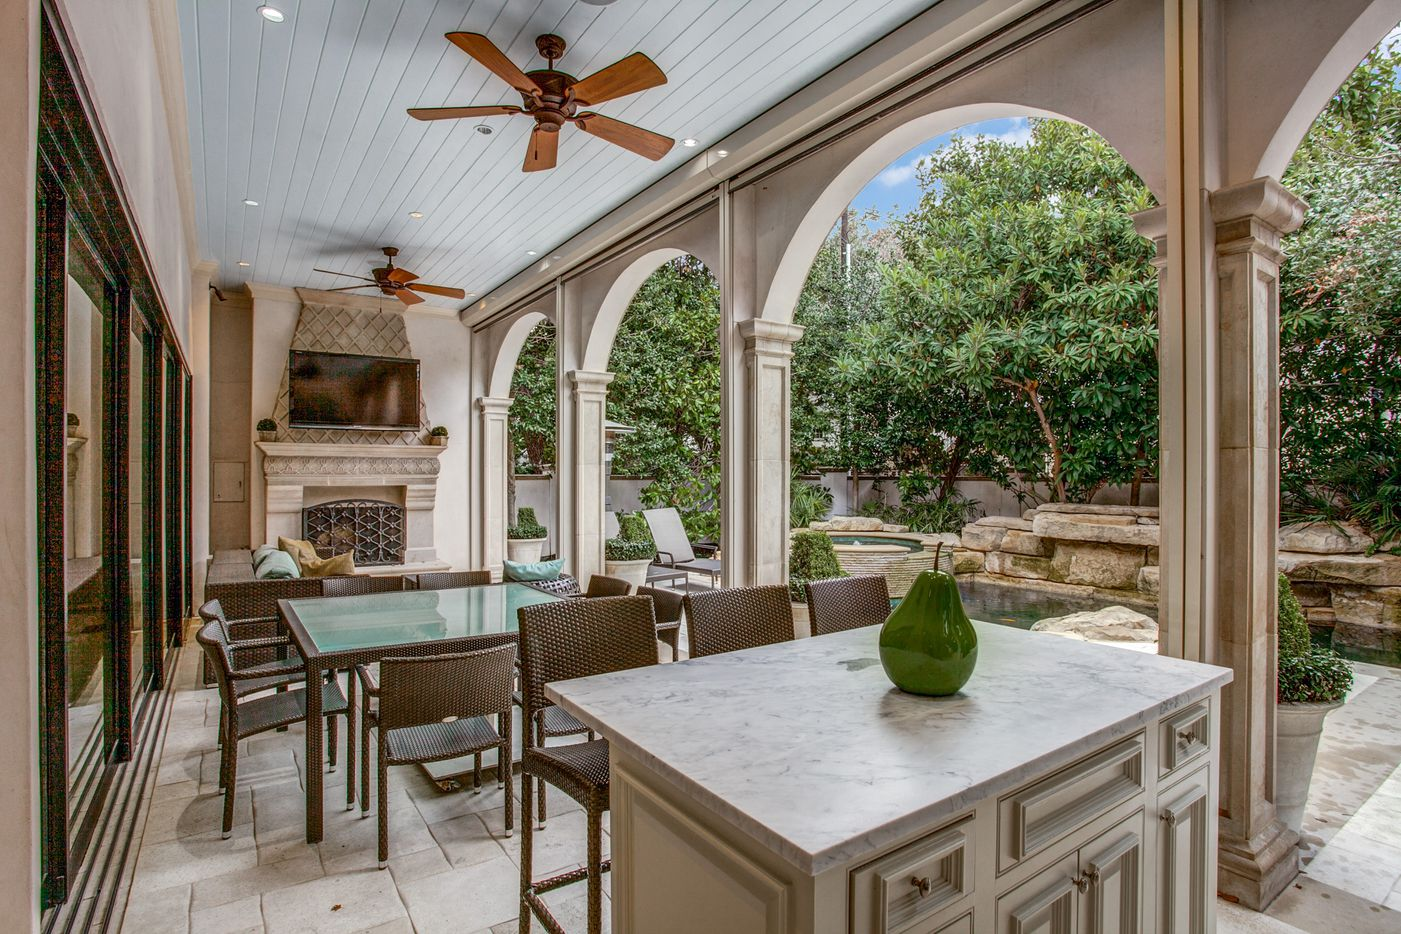 A look at the outdoor living area of the Dallas home Kameron Westcott is selling.